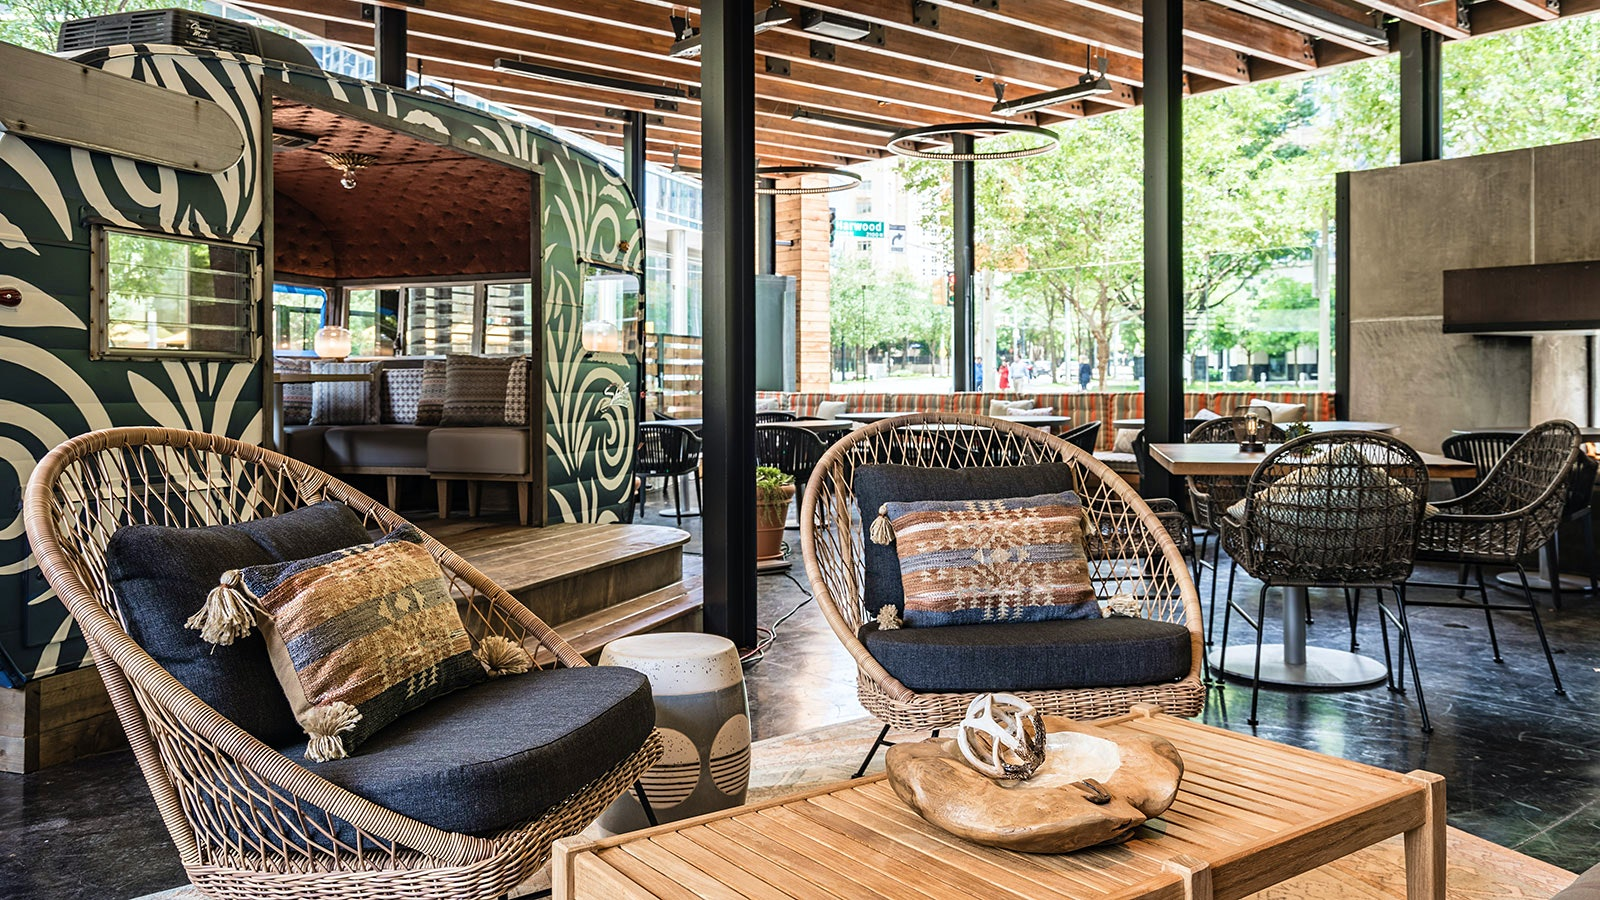 Outdoor patio area with a retractable roof at Haywire in Dallas